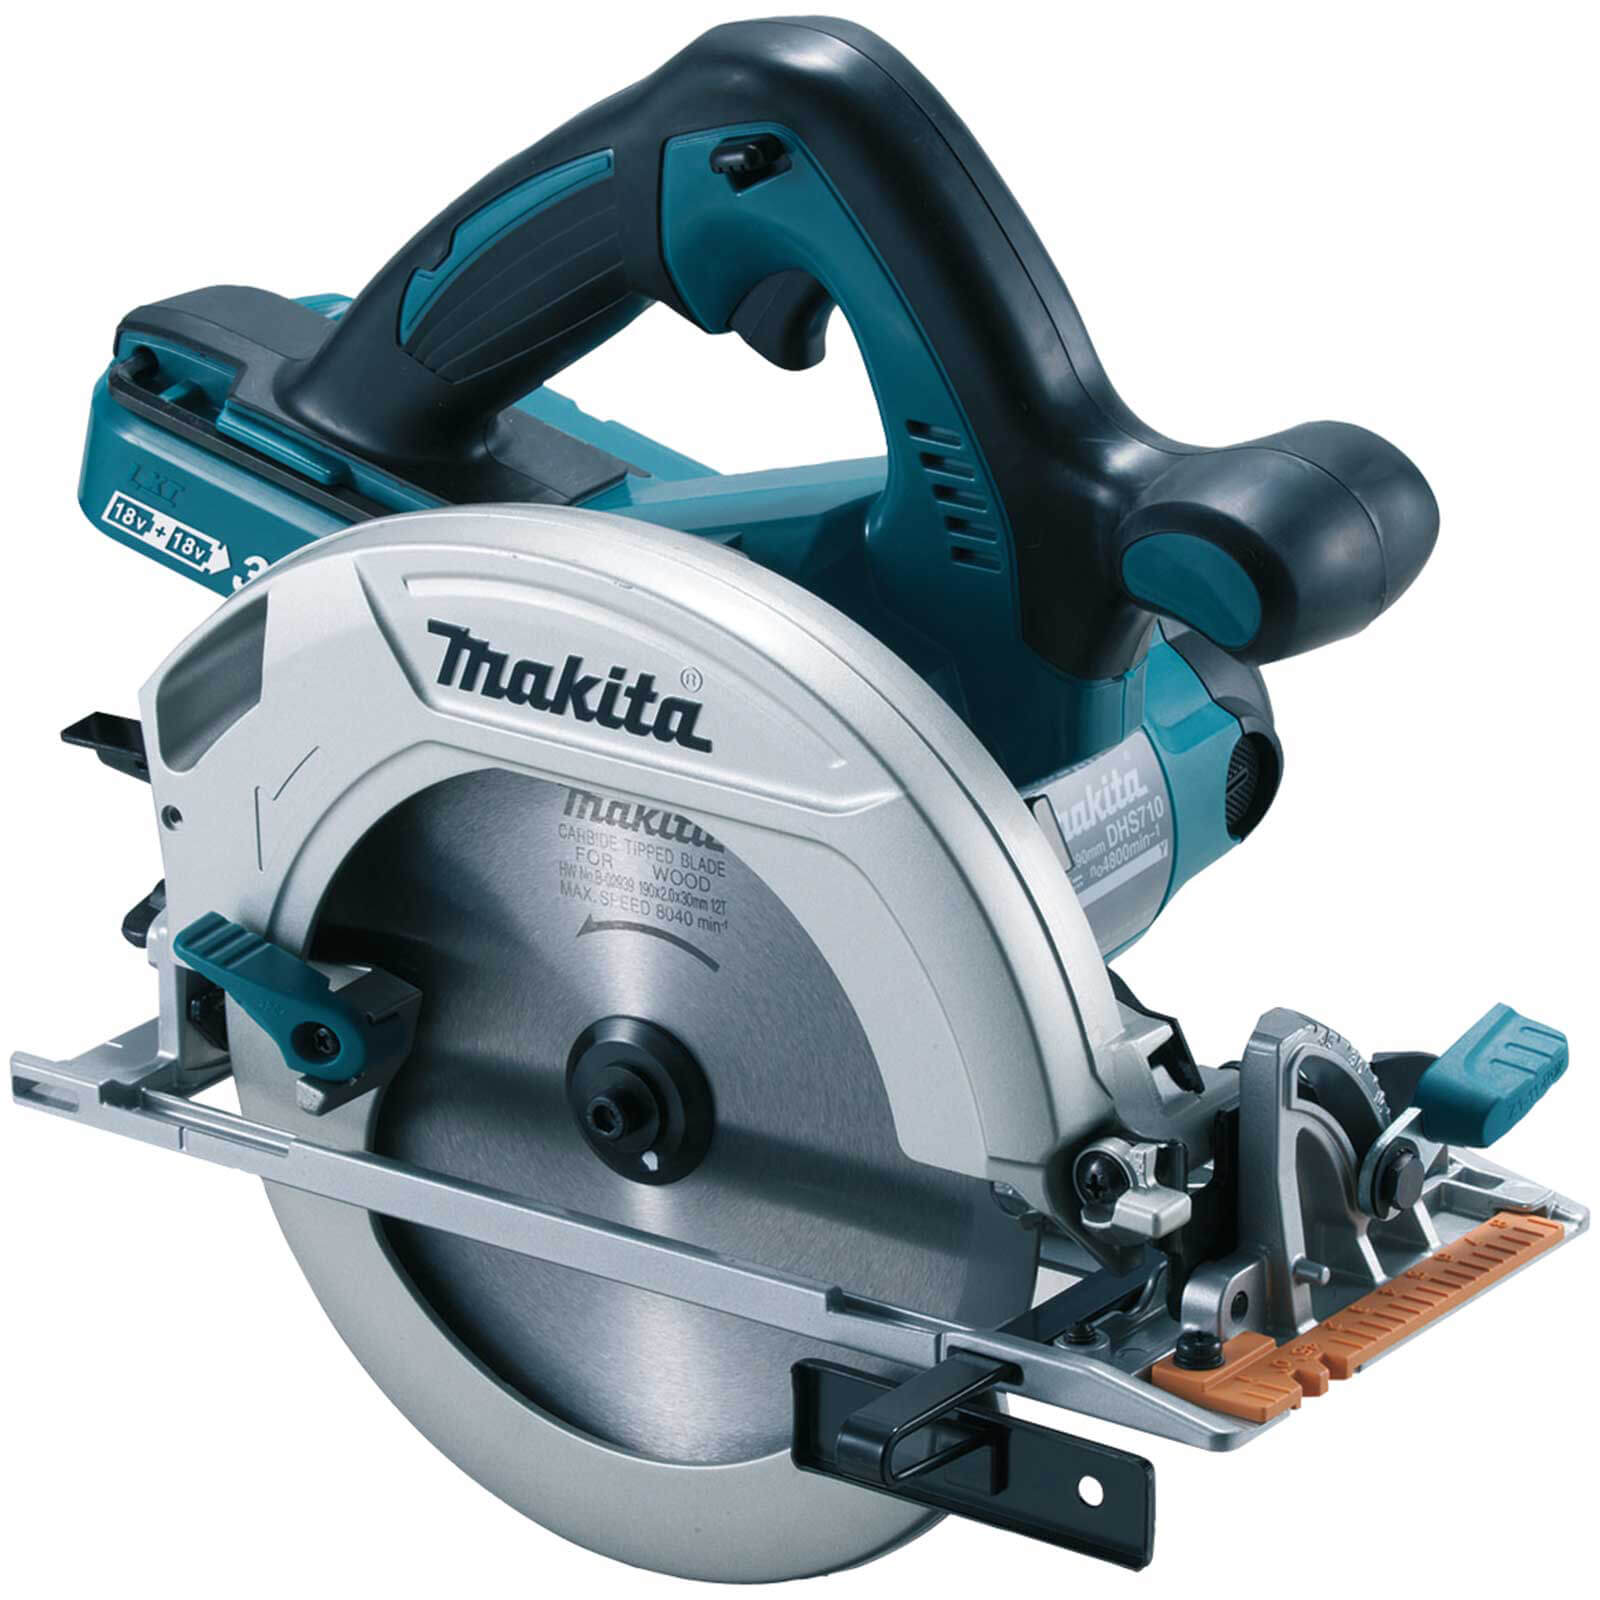 Image of Makita DHS710Z LXT Twin 18v Cordless Cirular Saw 190mm Blade without Battery Or Charger